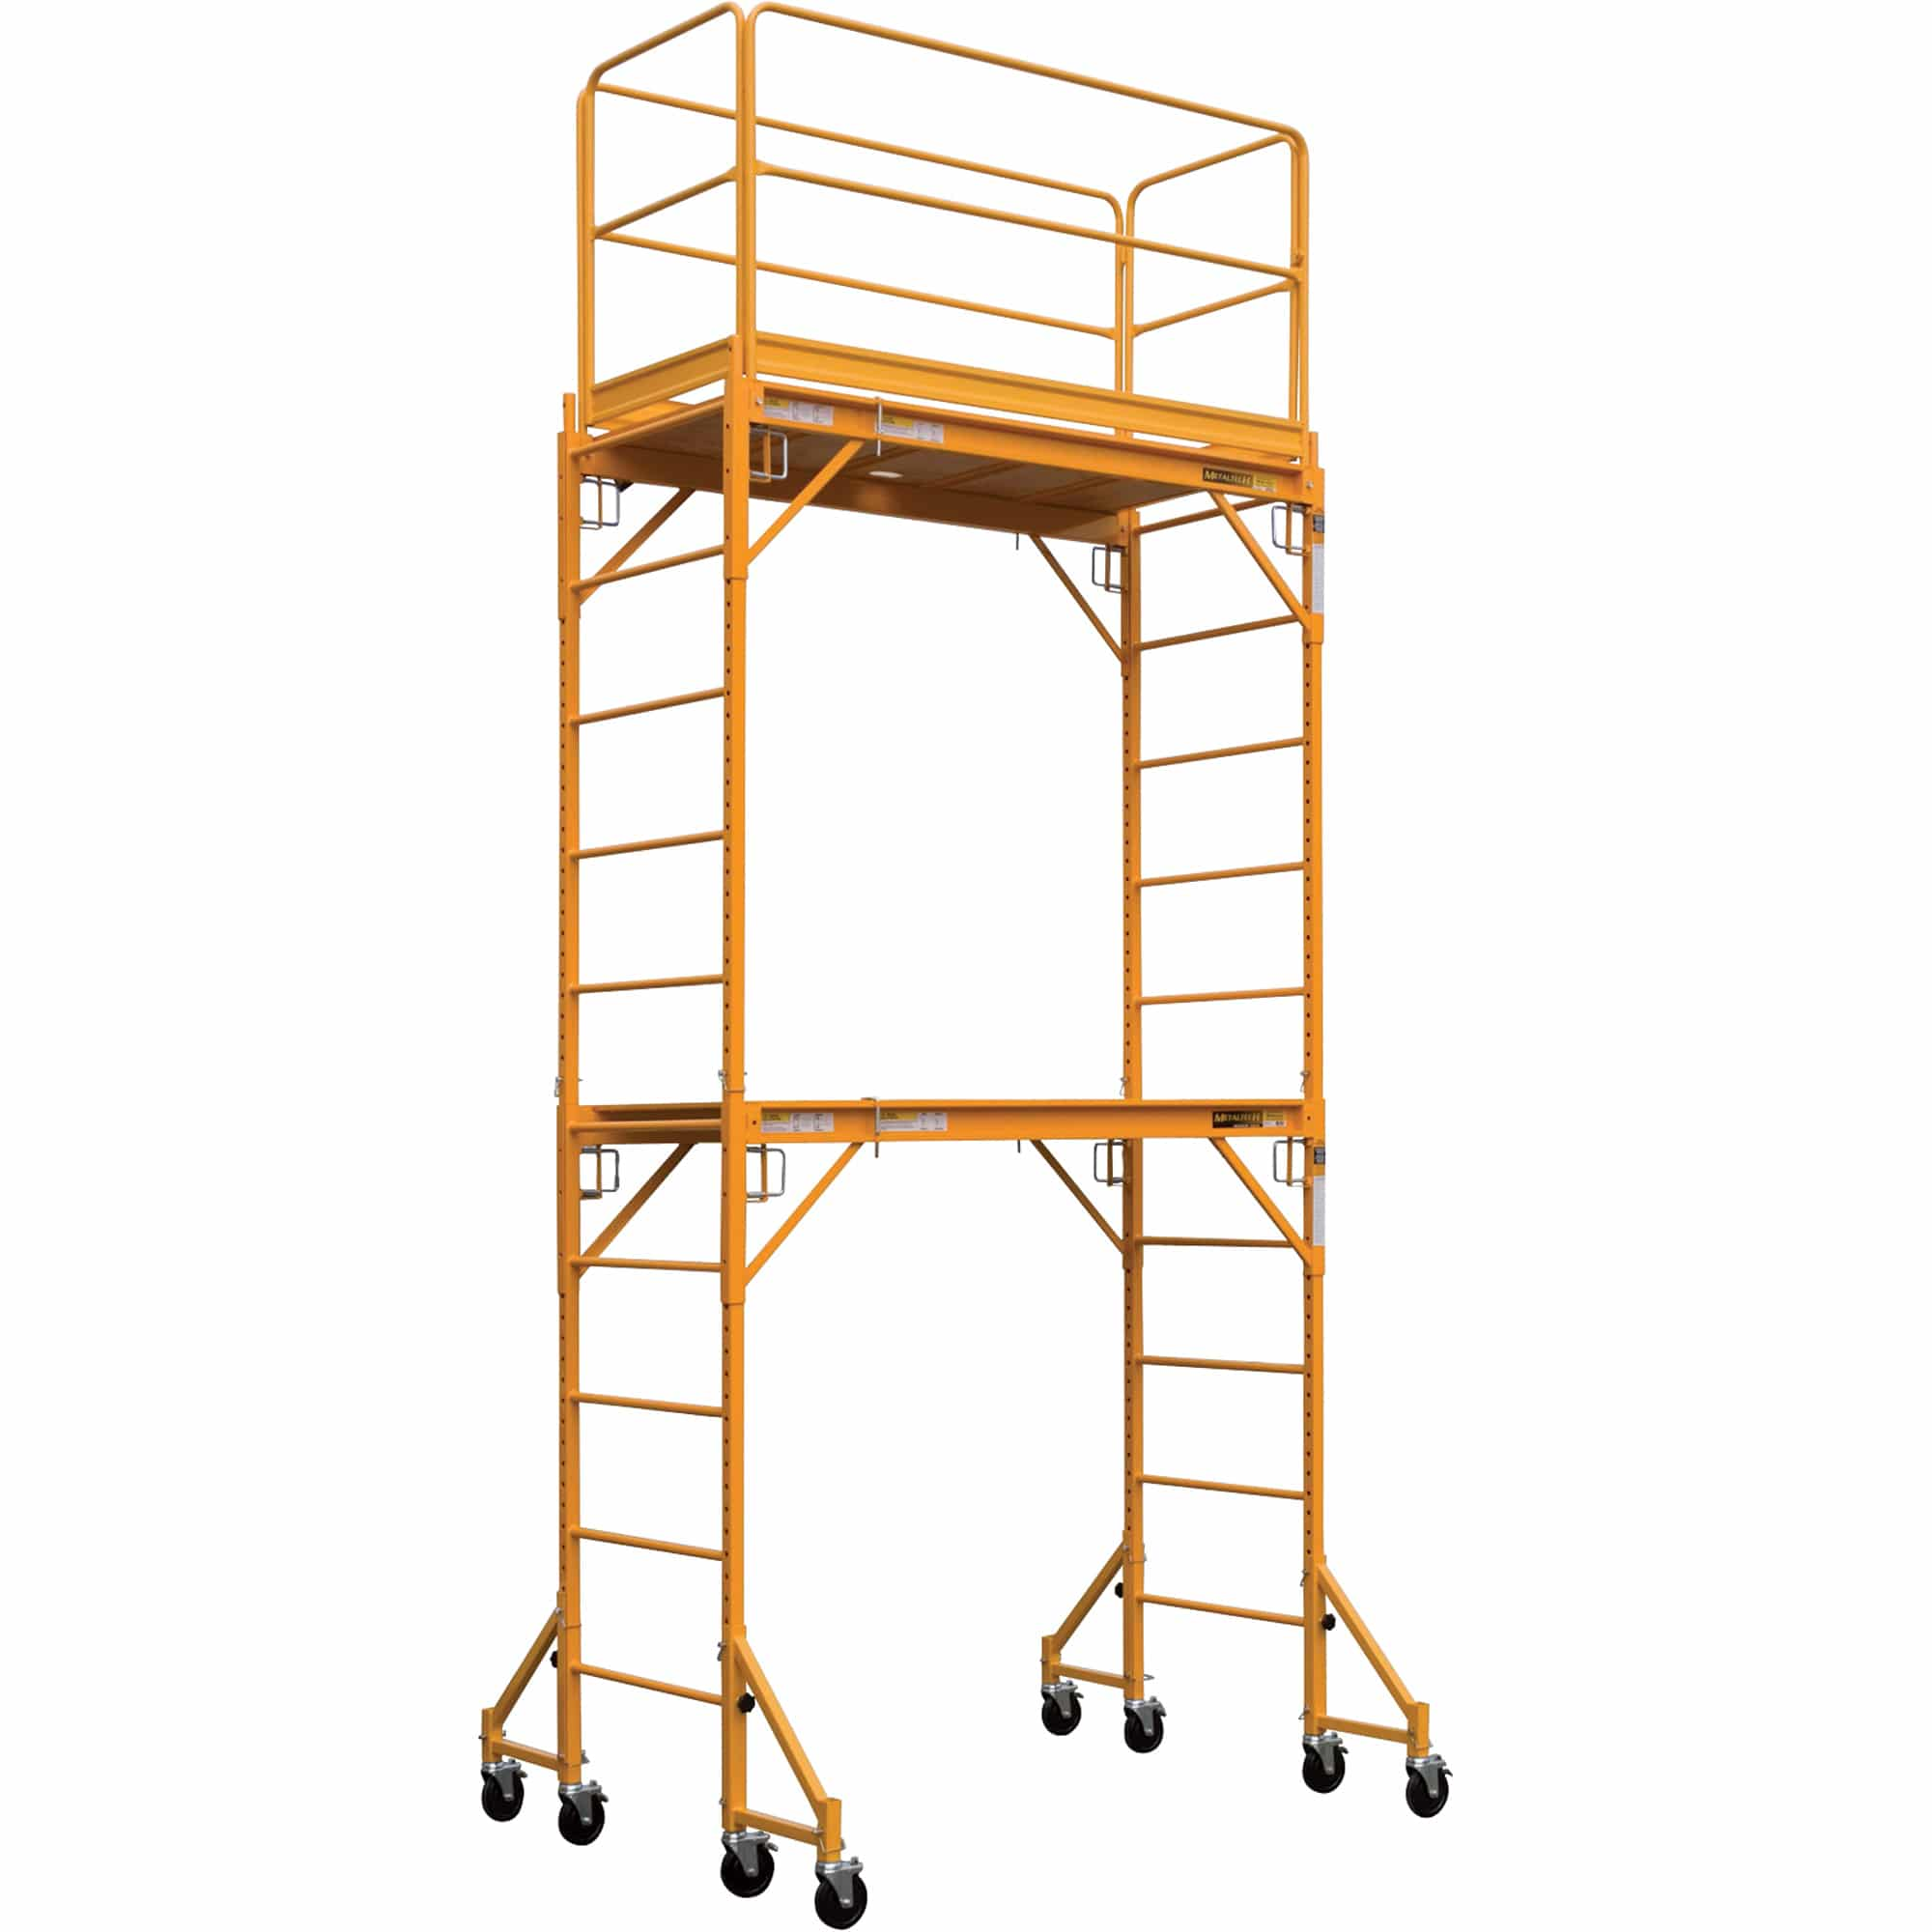 20 Foot Scaffolding Sections Discount Tool Amp Equipment